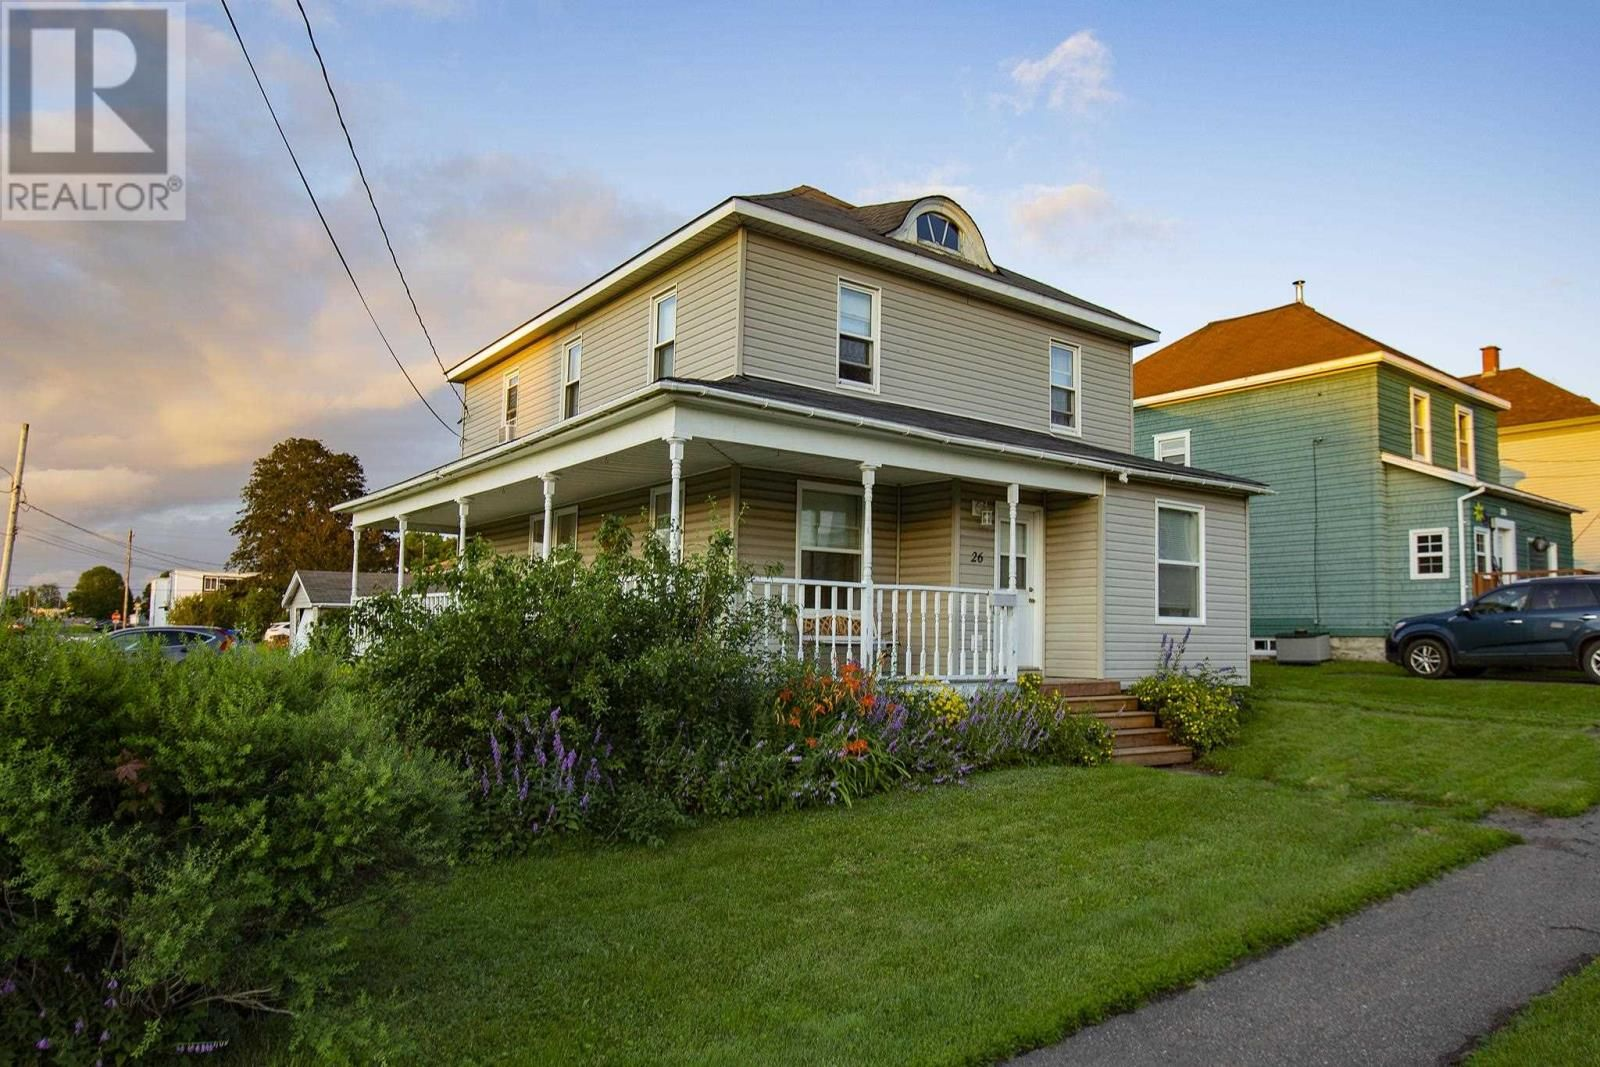 Main Photo: 26 Academy Street in Amherst: House for sale : MLS®# 202119180